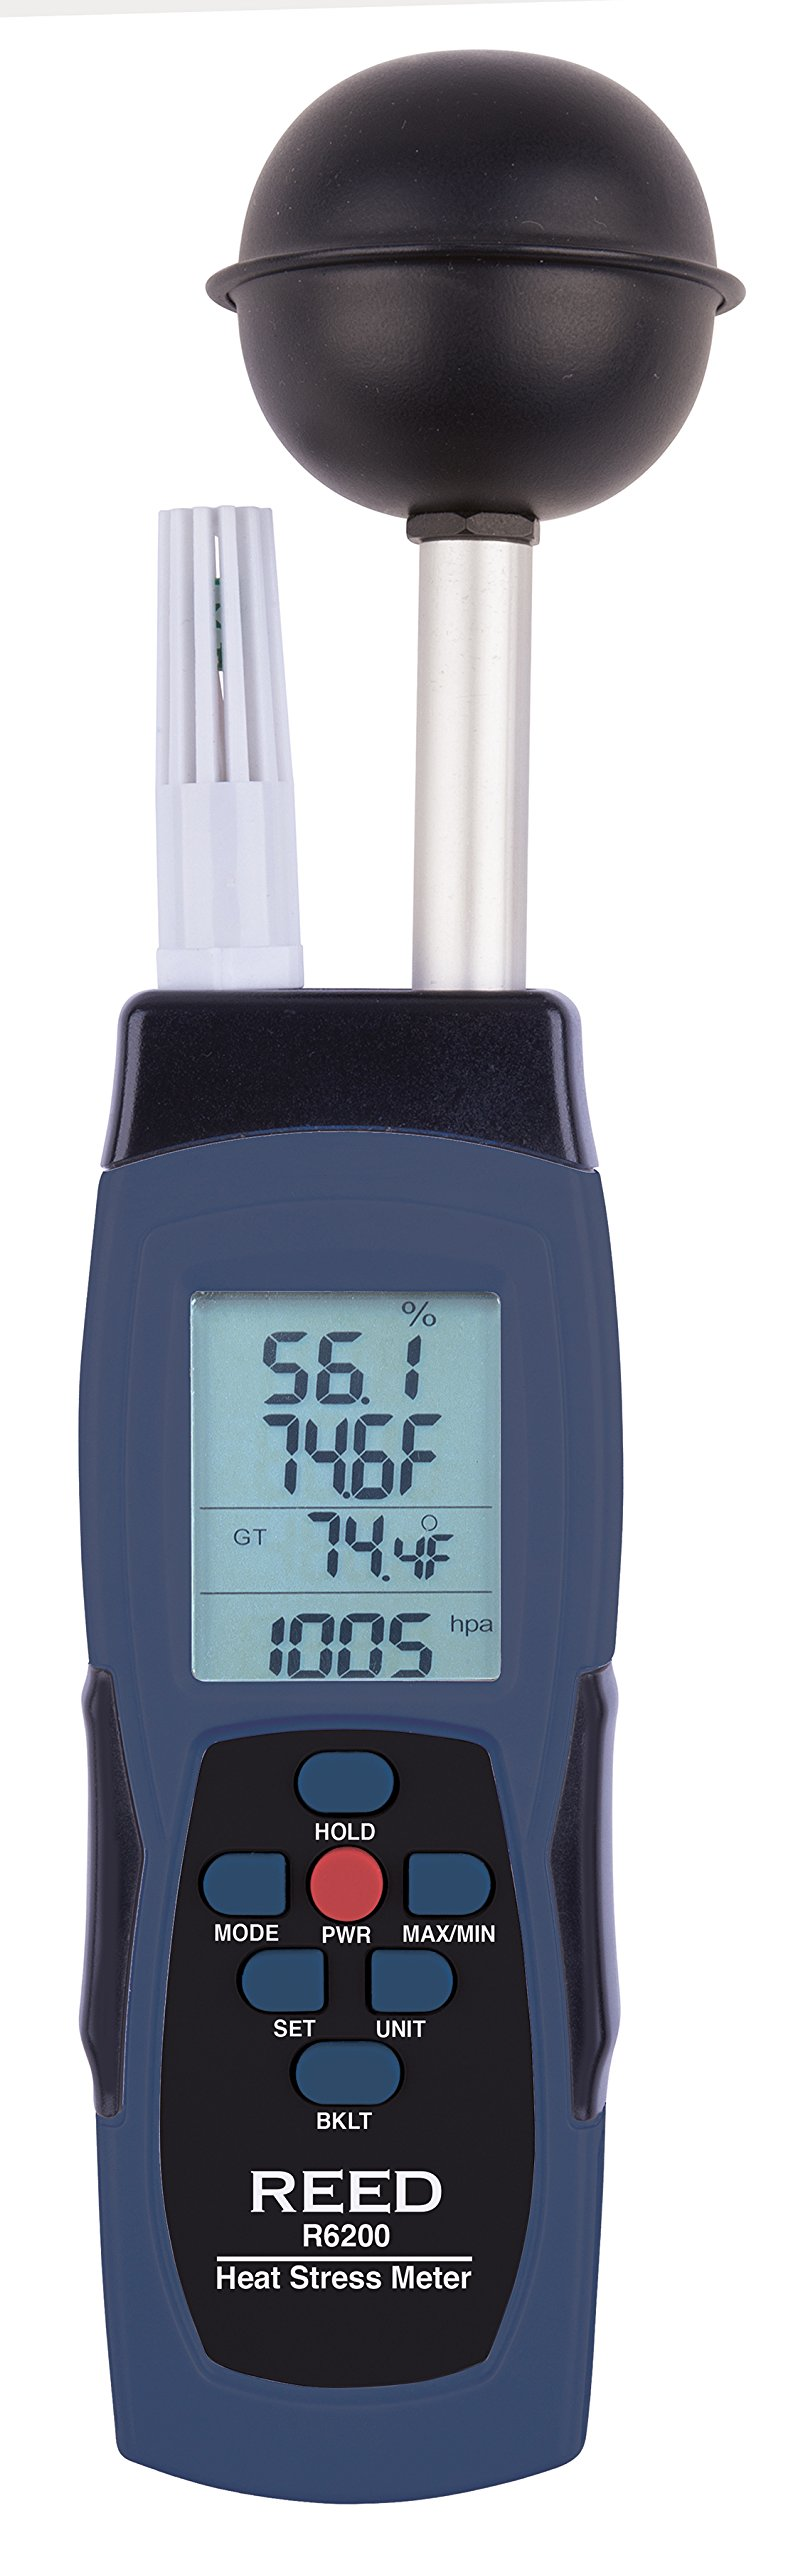 REED Instruments R6200 WBGT Heat Stress Meter by REED Instruments